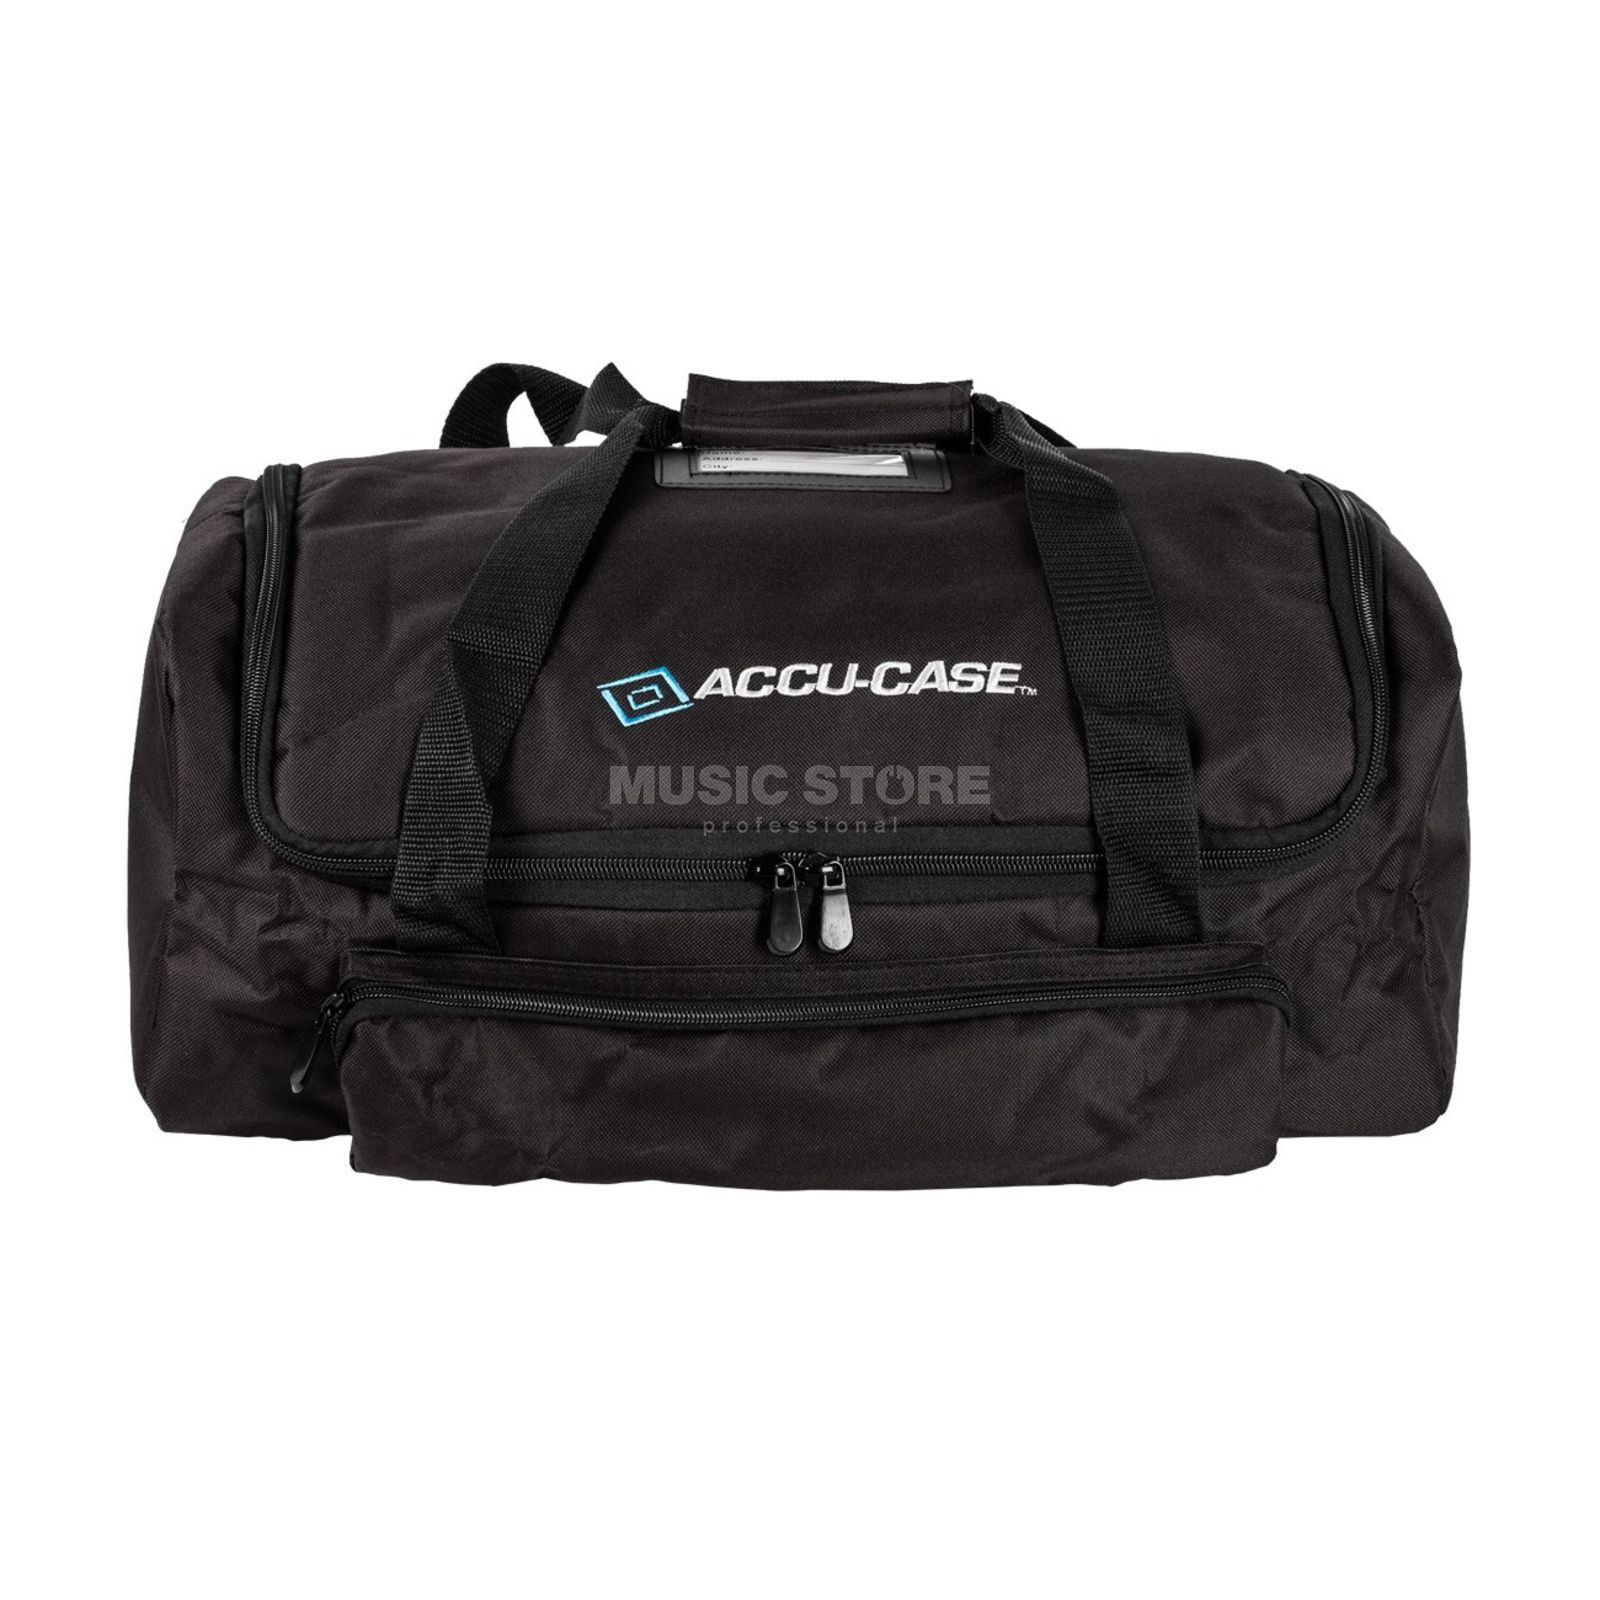 Accu Case ASC-AC-135 Bag 480 x 250 x 180 mm Produktbillede